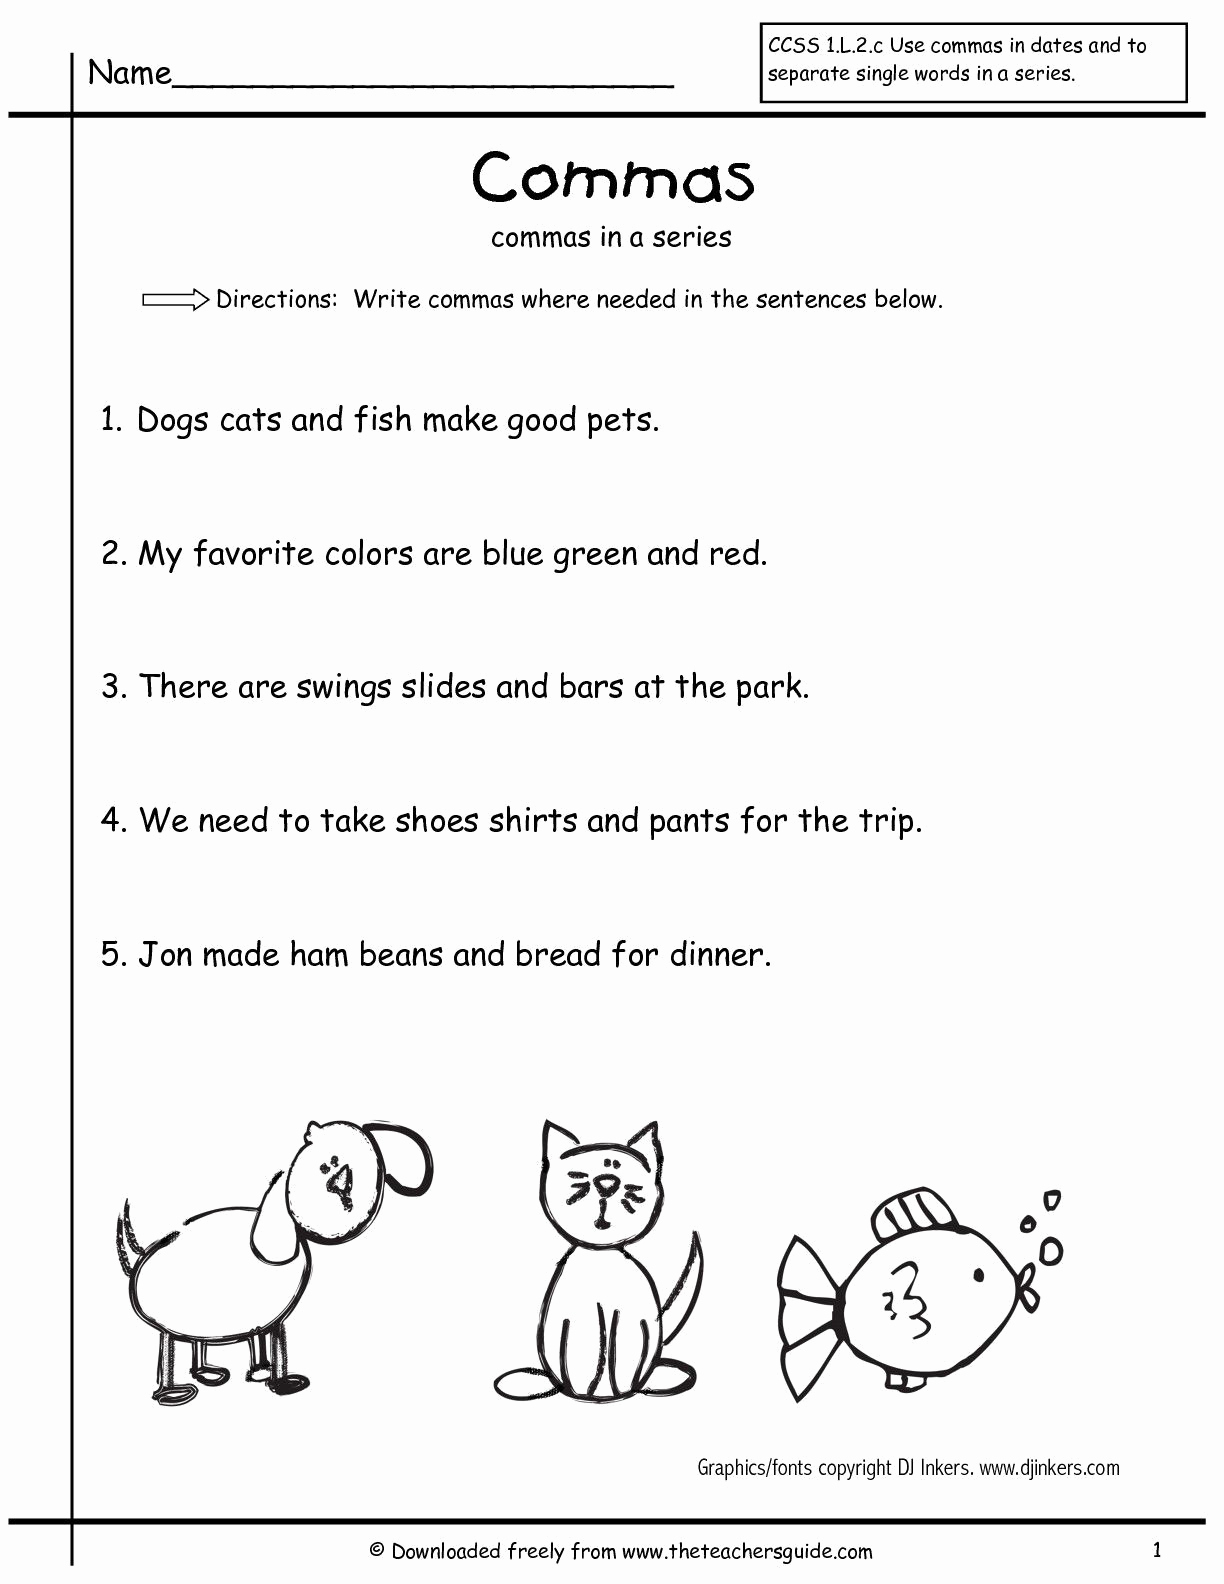 Capitalization Worksheets for 2nd Grade Luxury 20 Capitalization Worksheets for 2nd Grade